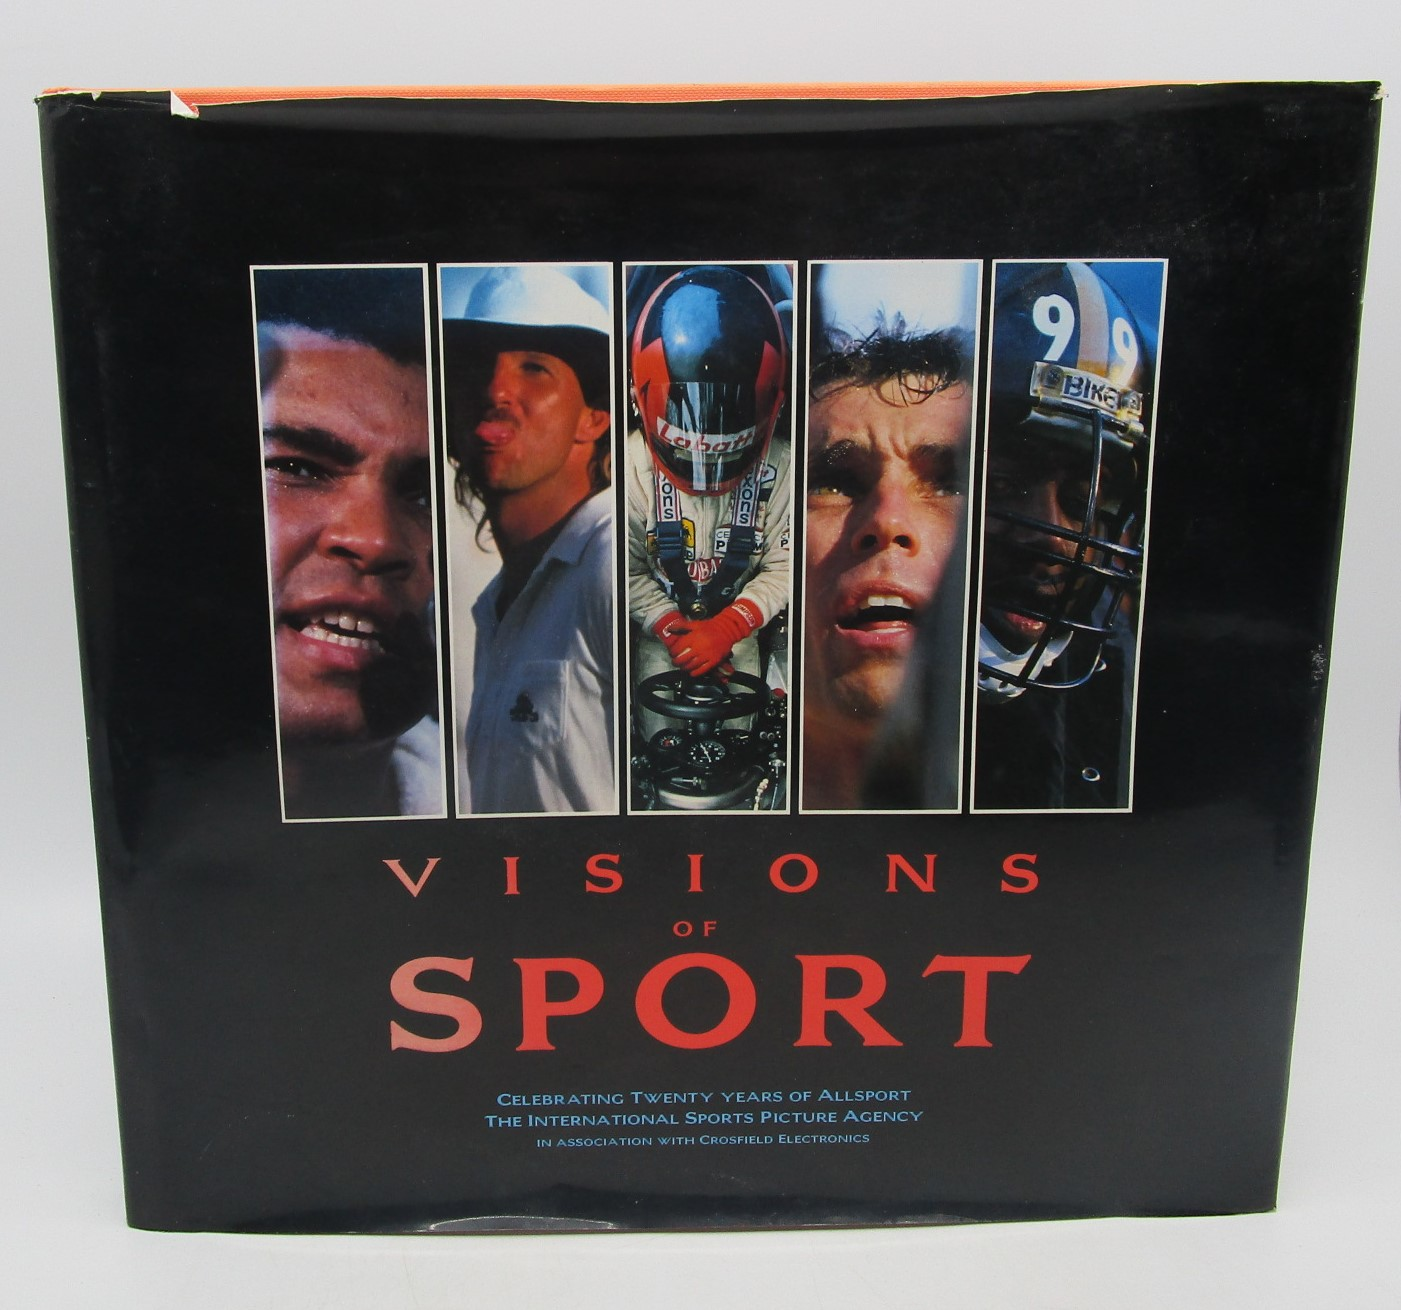 Image for Visions of Sport: Celebrating Twenty Years of Allsport, the International Sports Picture Agency in Association With Crosfield Electronics (Pelham practical sports) FIRST EDITION